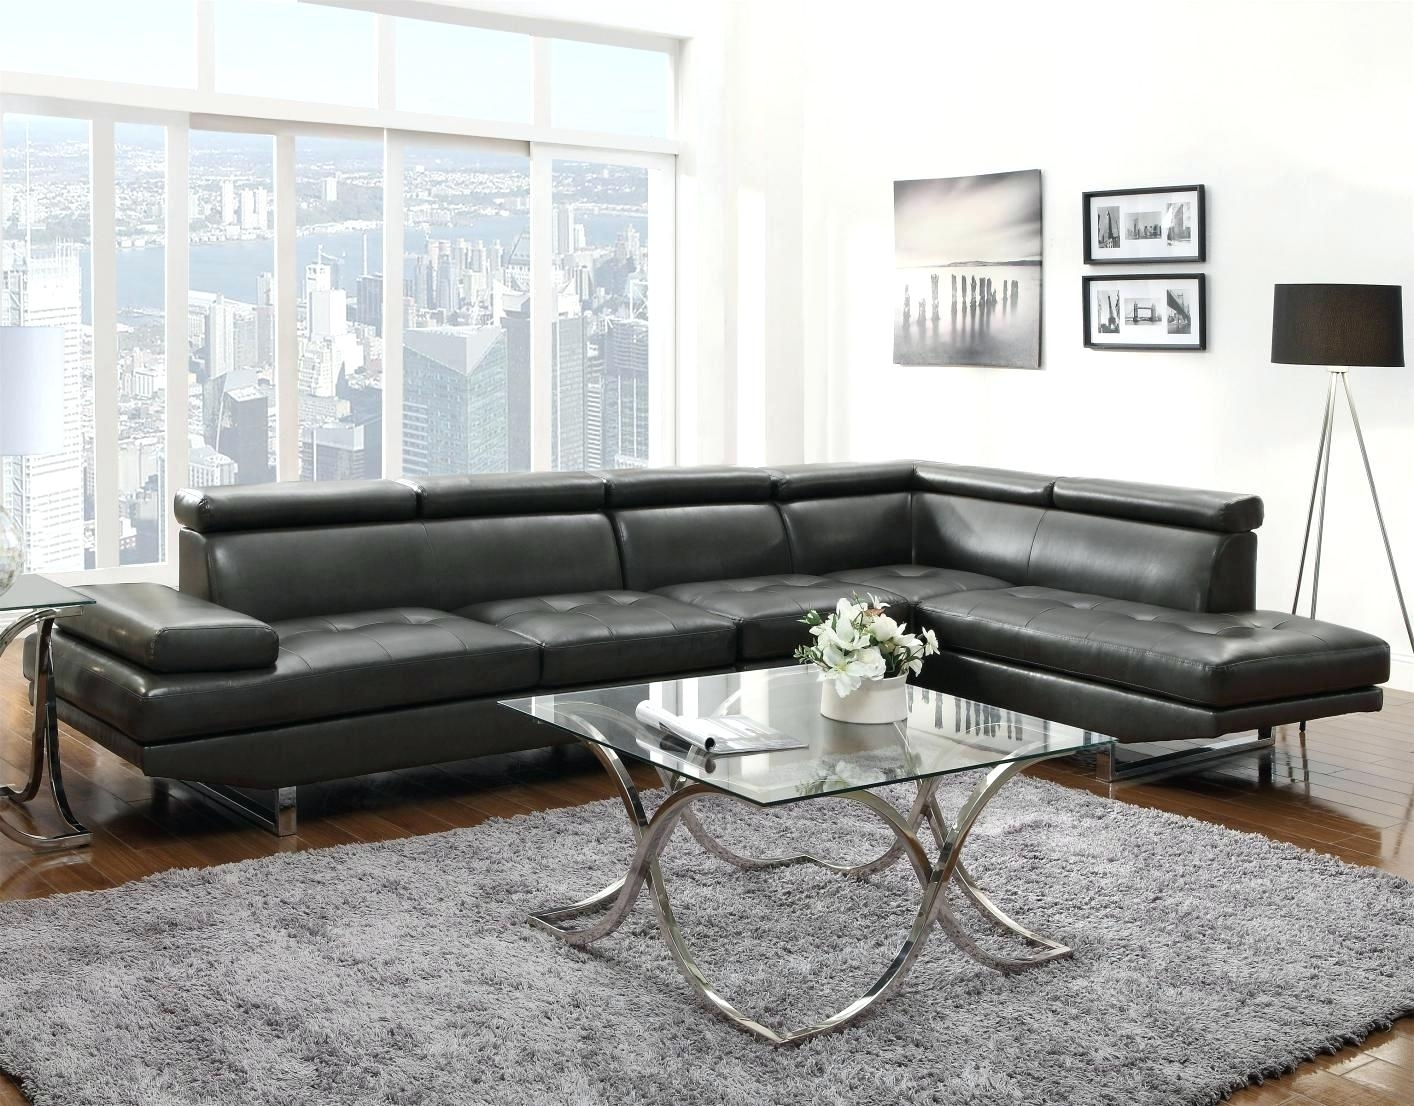 Leather Sectional Sofas Lear Furniture Canada Sofa Memphis Tn Used Throughout Memphis Tn Sectional Sofas (View 2 of 10)